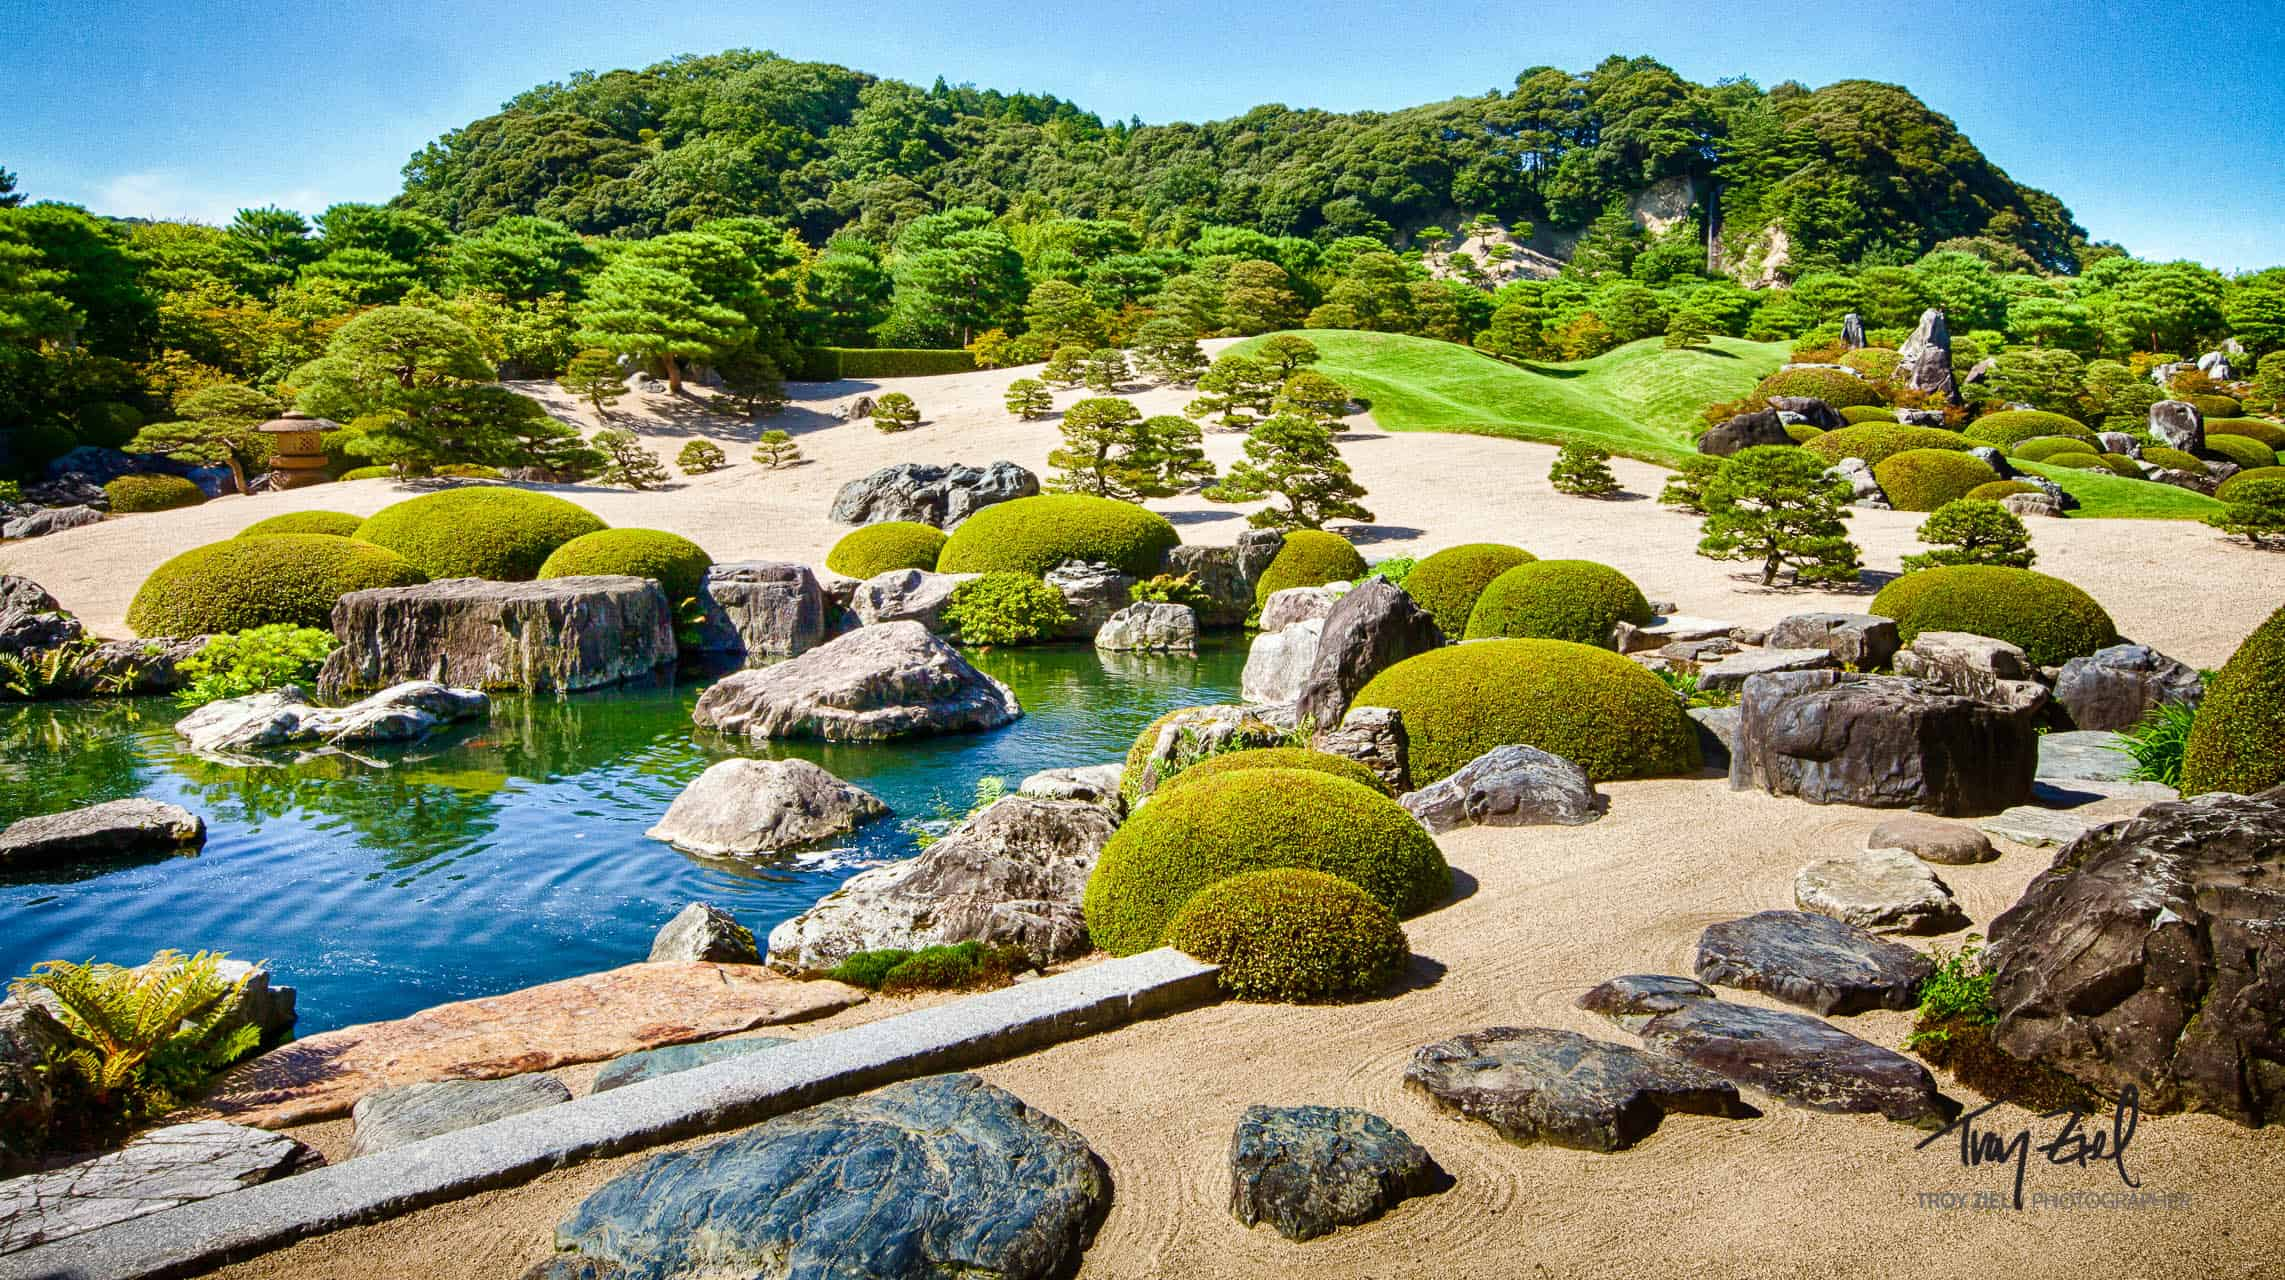 japan and the role of zen gardens The goal behind japanese garden design is to make a  important role in japanese gardens  rock and sand gardens found at zen buddhist temples in japan.